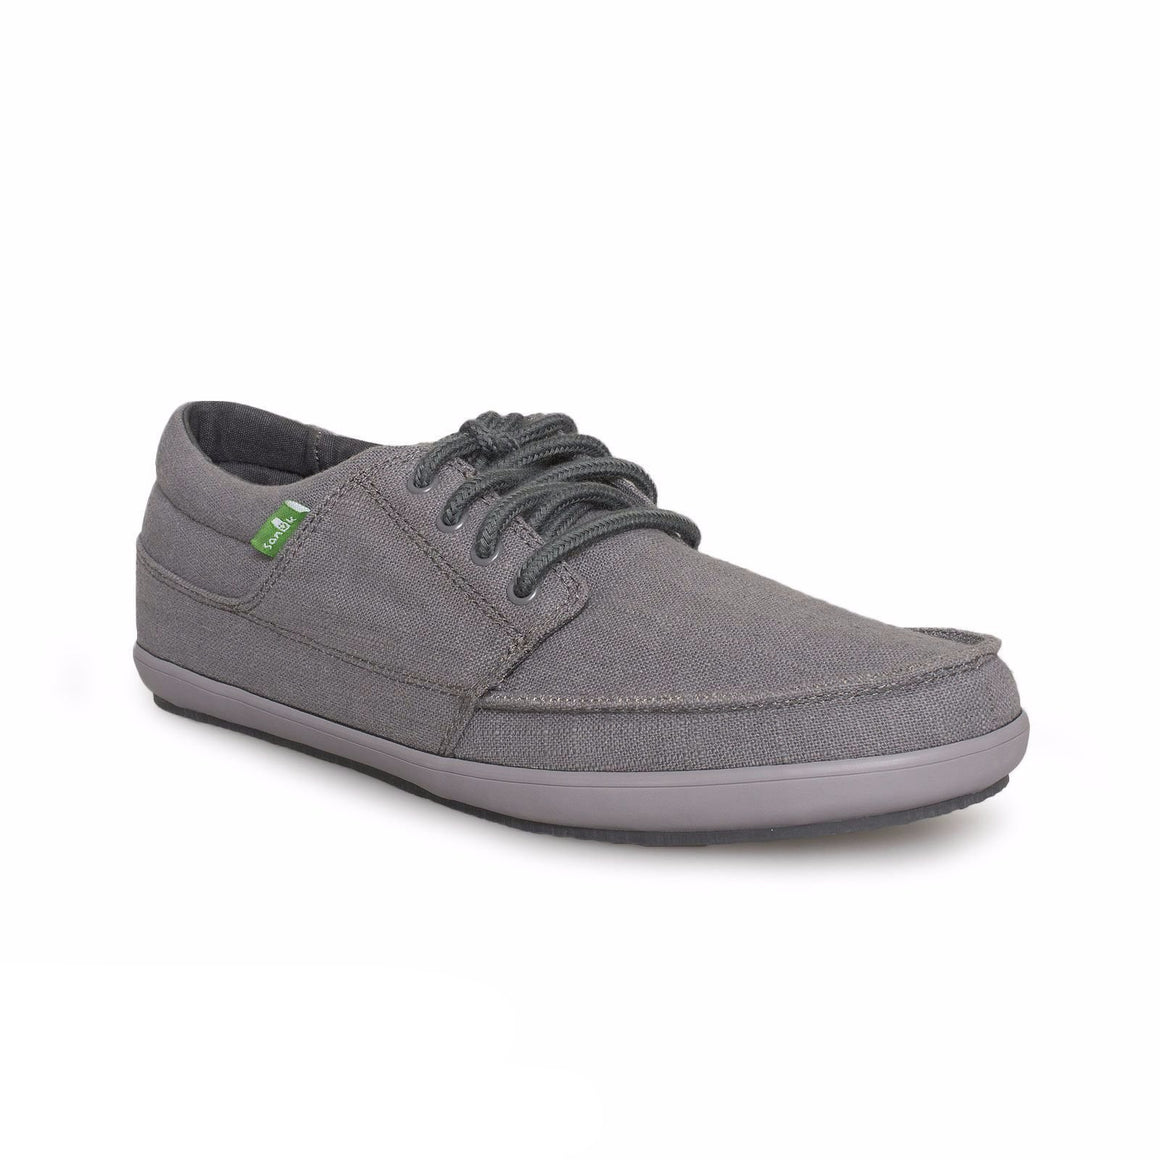 Sanuk TKO Dark Charcoal Shoes